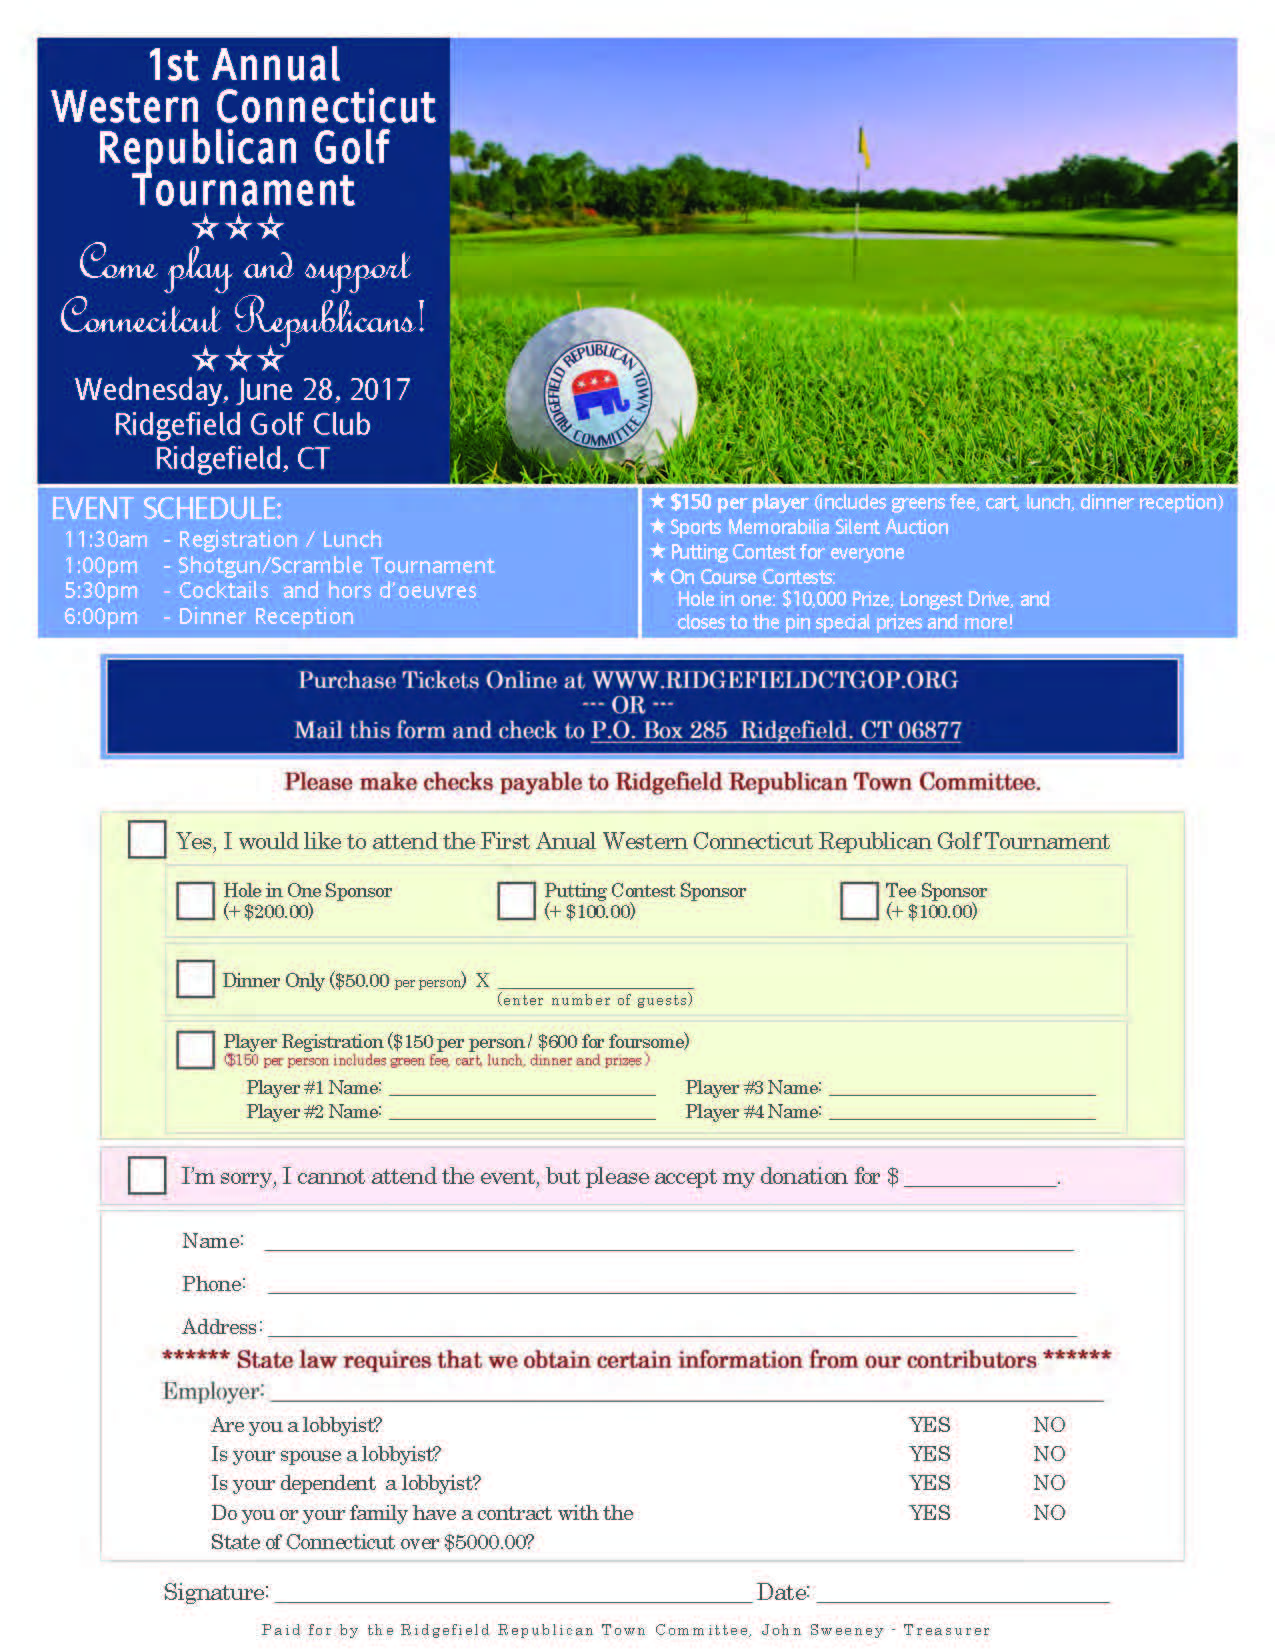 ridgefield republican town committee golf tournament planned for